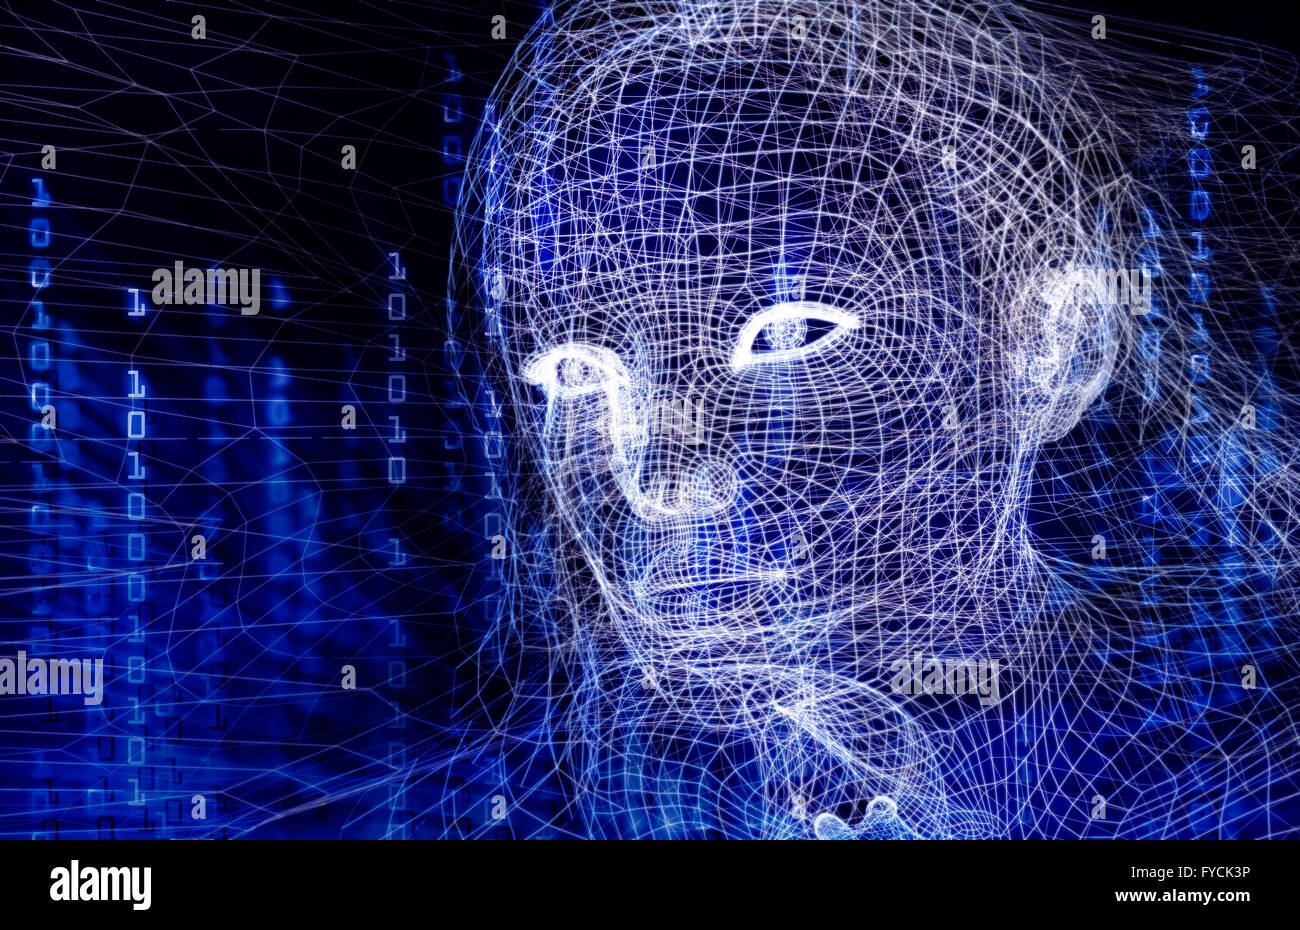 Face Of A Woman, Digital Wireframe, Binary Code, 3D Illustration Stock Photo: 102925978